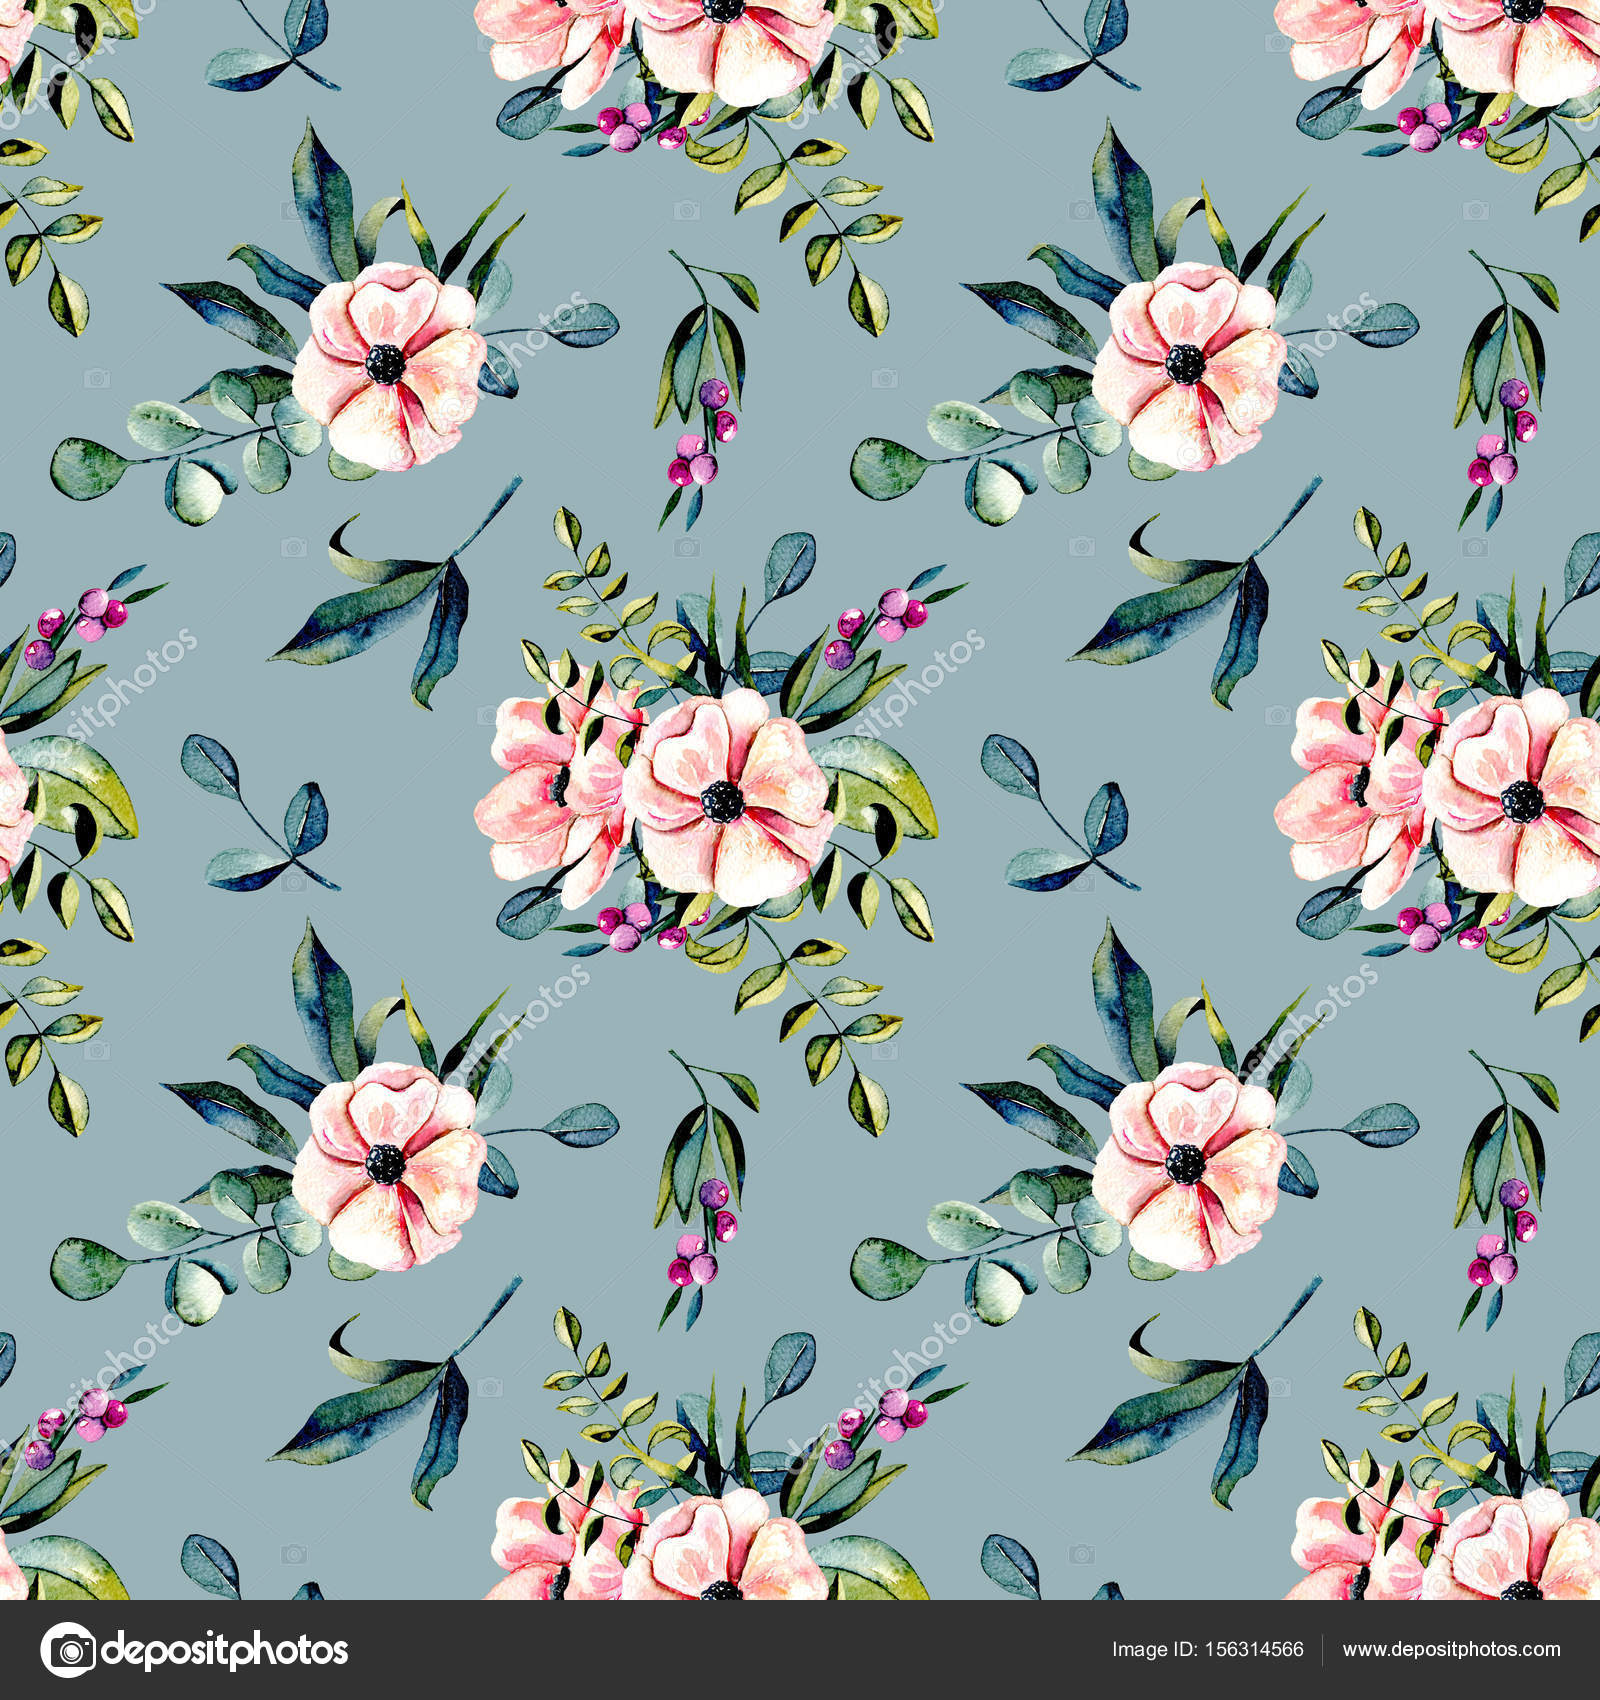 Seamless Floral Pattern With Watercolor Pink Flowers And Eucalyptus